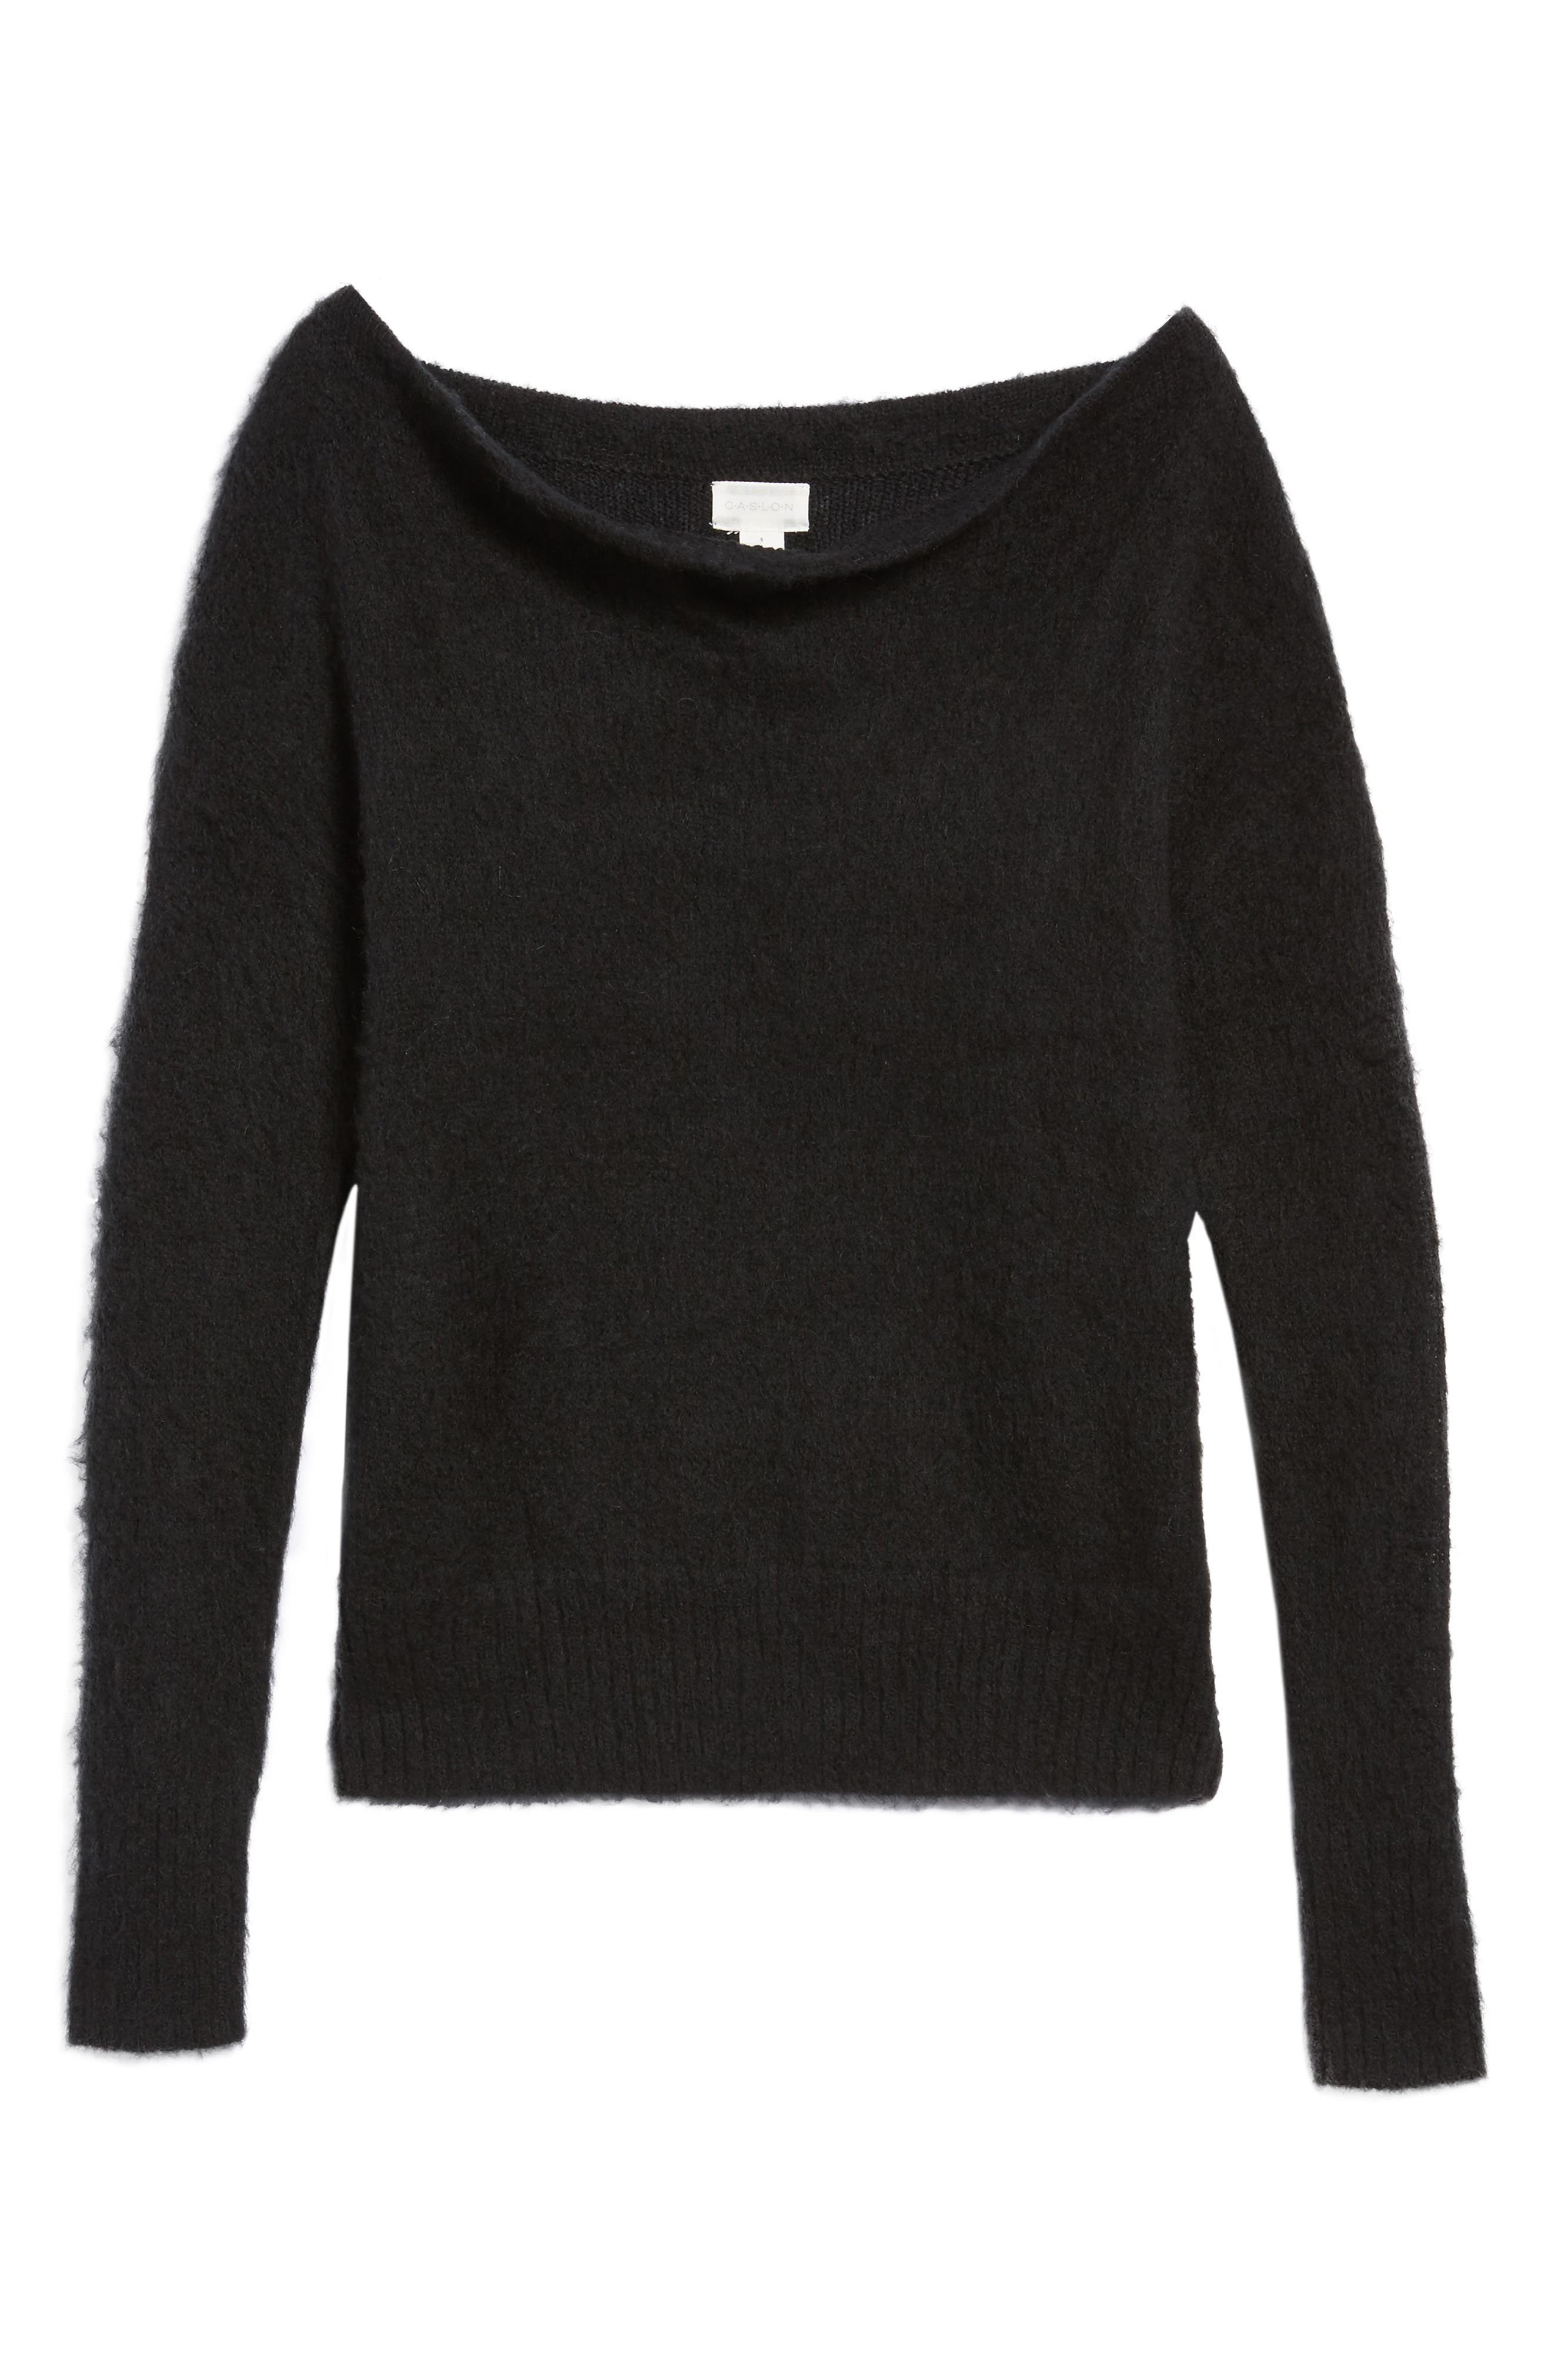 Long Sleeve Brushed Sweater,                             Alternate thumbnail 6, color,                             001